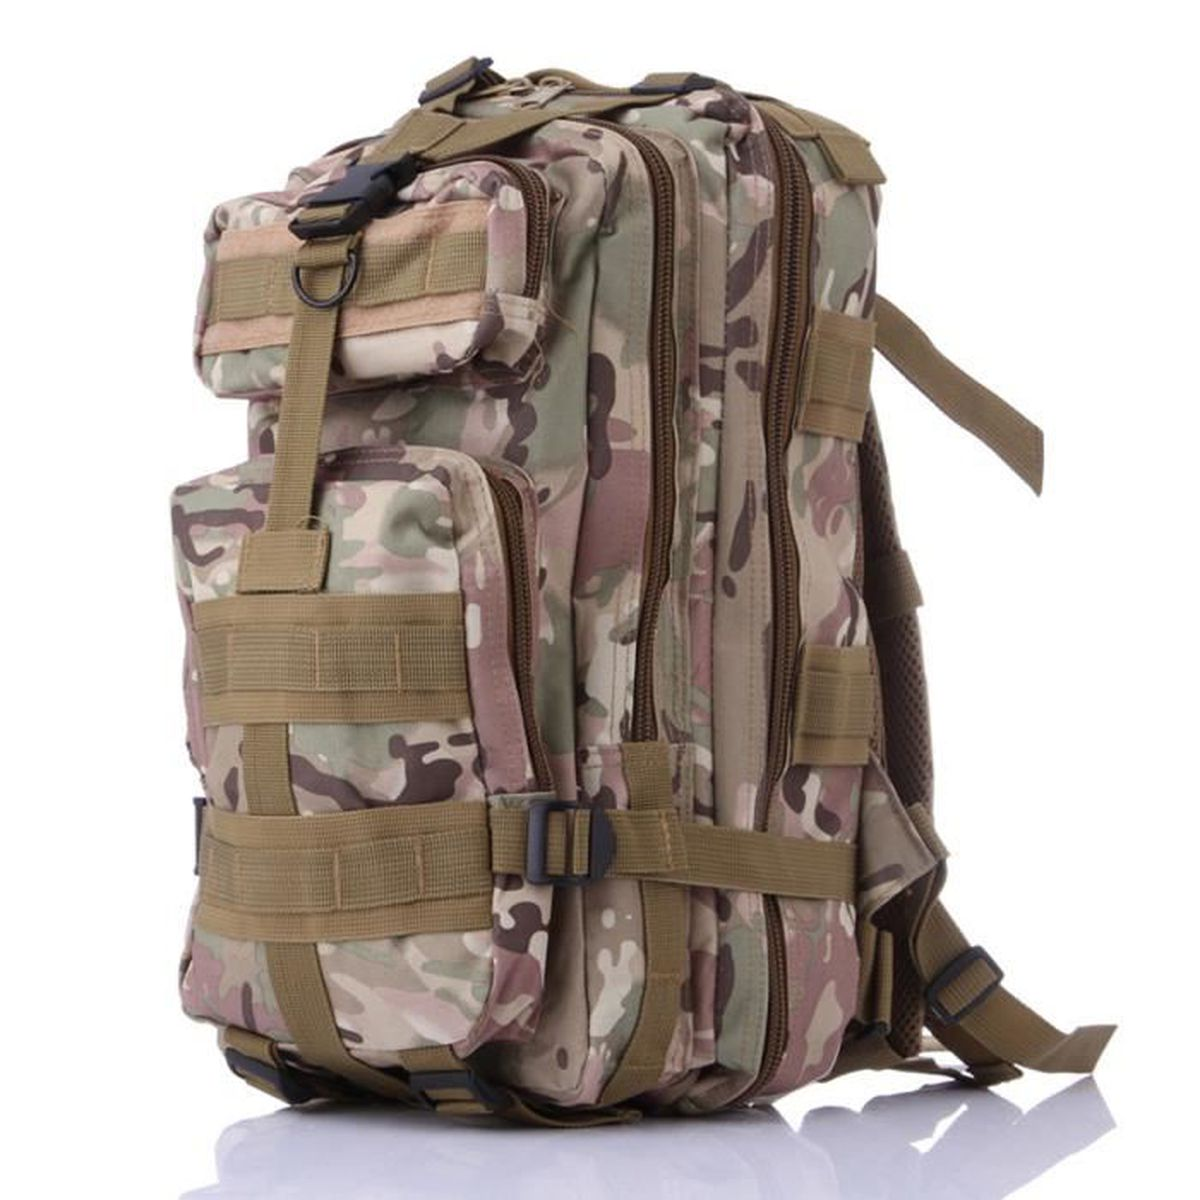 sac dos militaire camouflage pour camping voyage randonn e alpinisme tanche 3p tactique sac. Black Bedroom Furniture Sets. Home Design Ideas